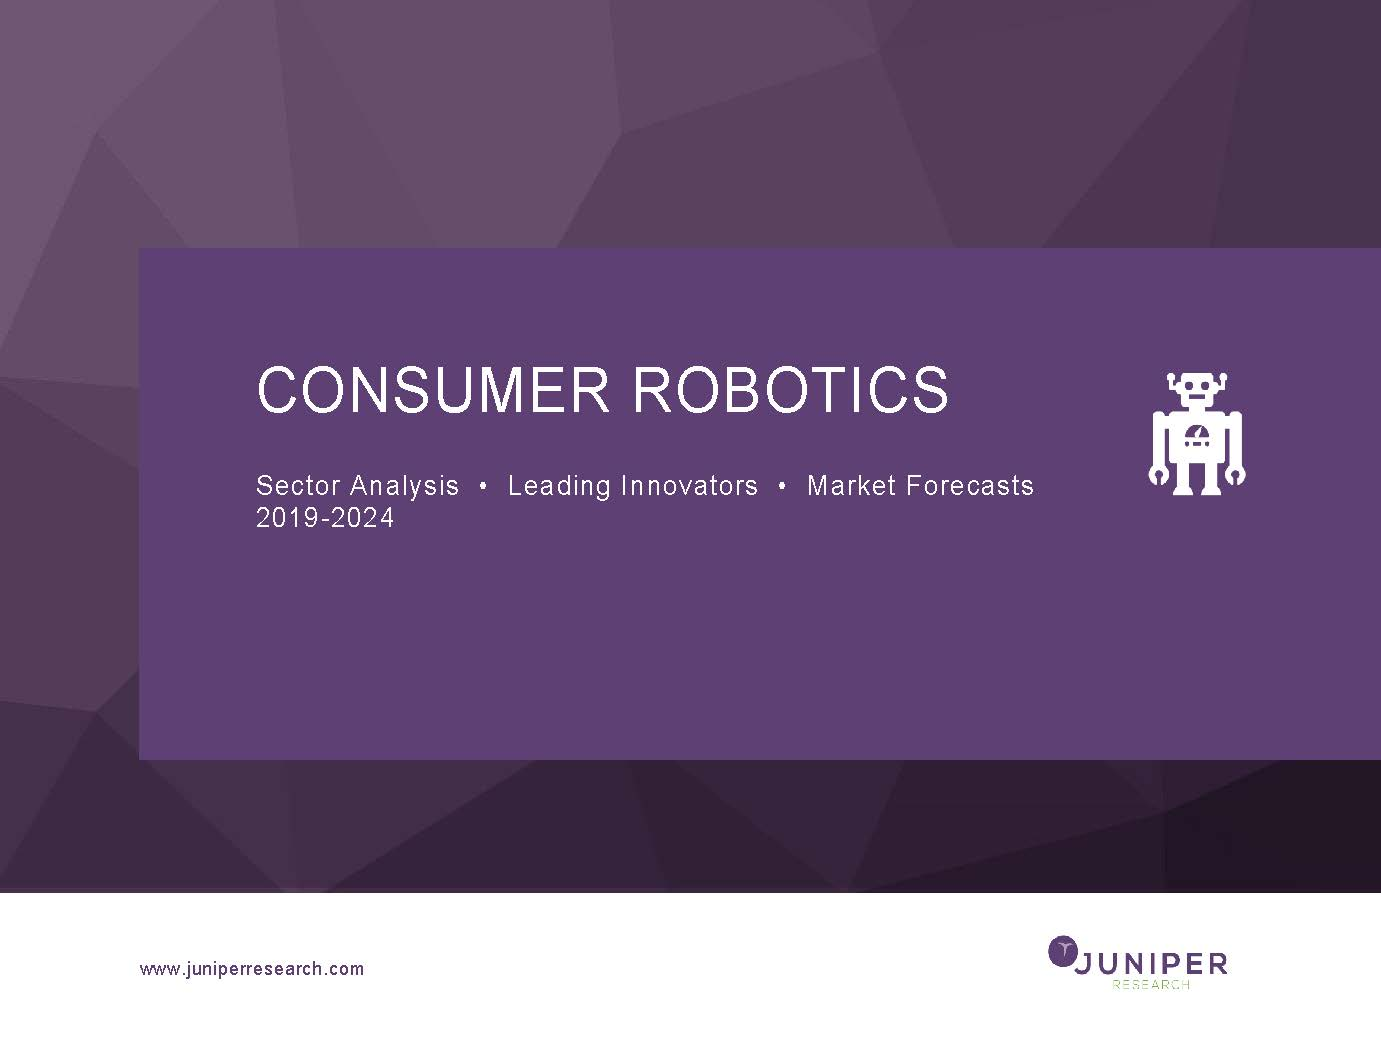 Consumer Robotics: Sector Analysis, Leading Innovators & Emerging Opportunities 2018-2022